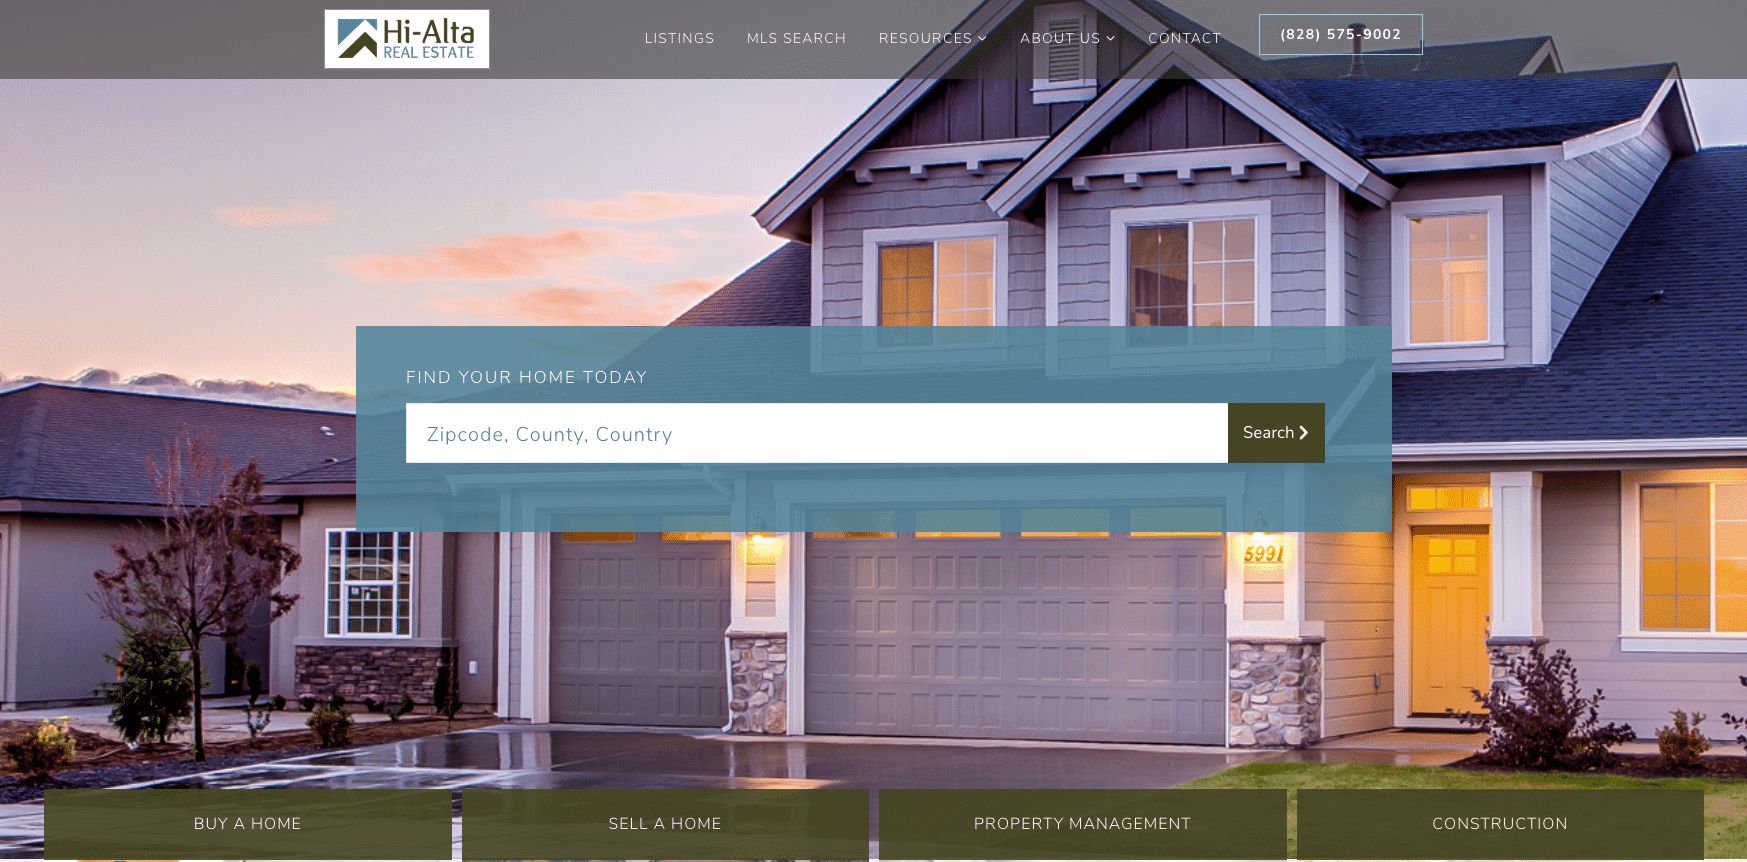 Hi-Alta Real Estate home page - After